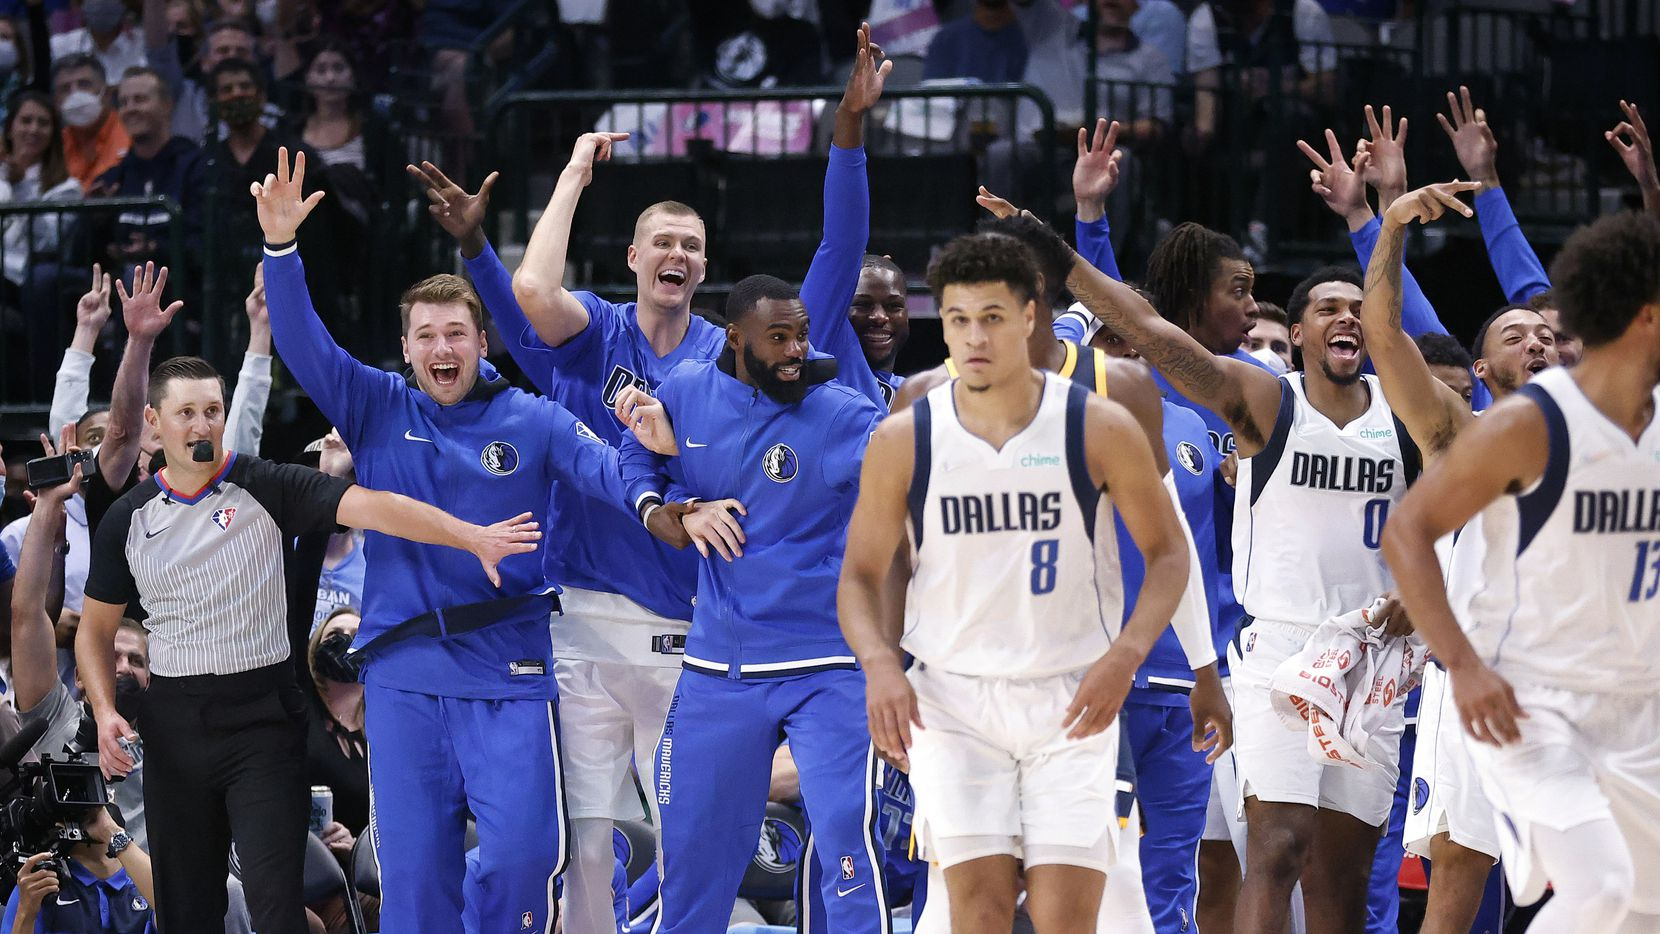 (from left) The Dallas Mavericks bench including (from left) guard Luka Doncic, center Kristaps Porzingis and forward Tim Hardaway Jr. celebrate after center Boban Marjanovic hit a second half three-pointer against the Utah Jazz at the American Airlines Center in Dallas, Wednesday, October 6, 2021. The Mavericks defeated the Jazz, 111-101.